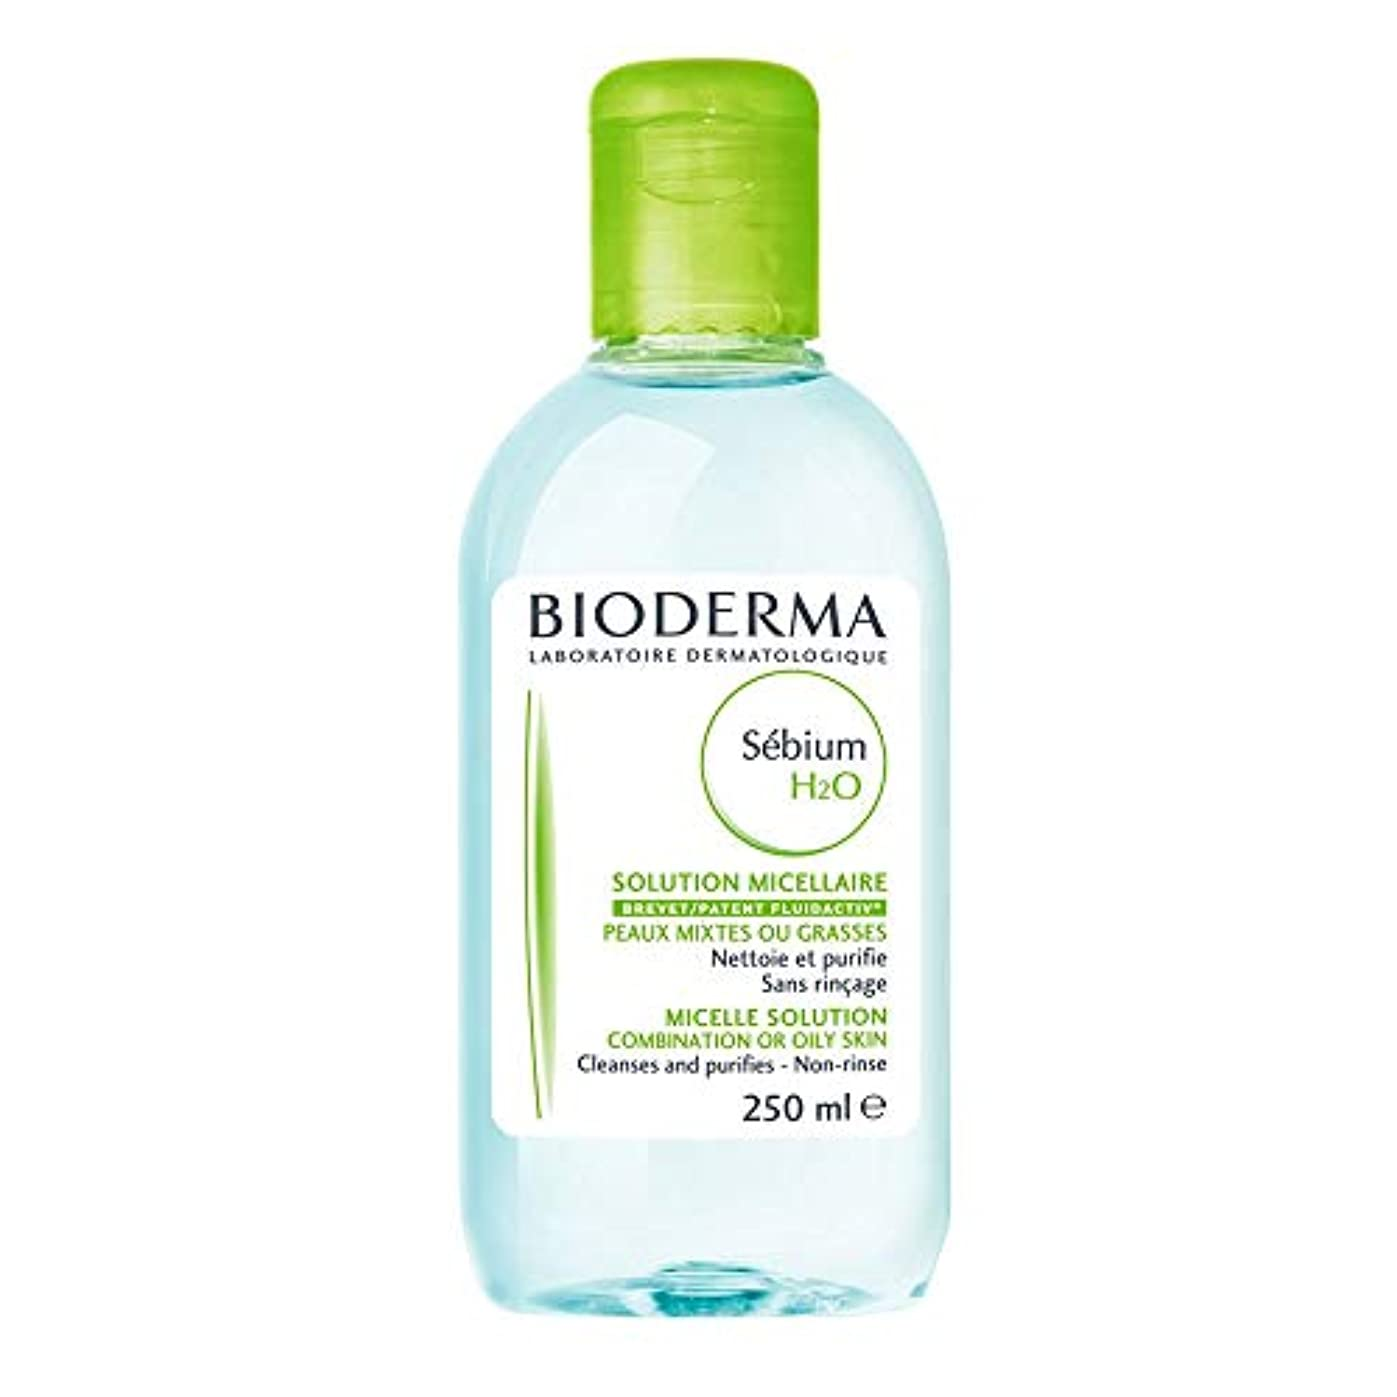 バイナリ納税者食料品店Bioderma - Sebium H2O Purifying Cleansing Micelle Solution (250 ml) [並行輸入品]